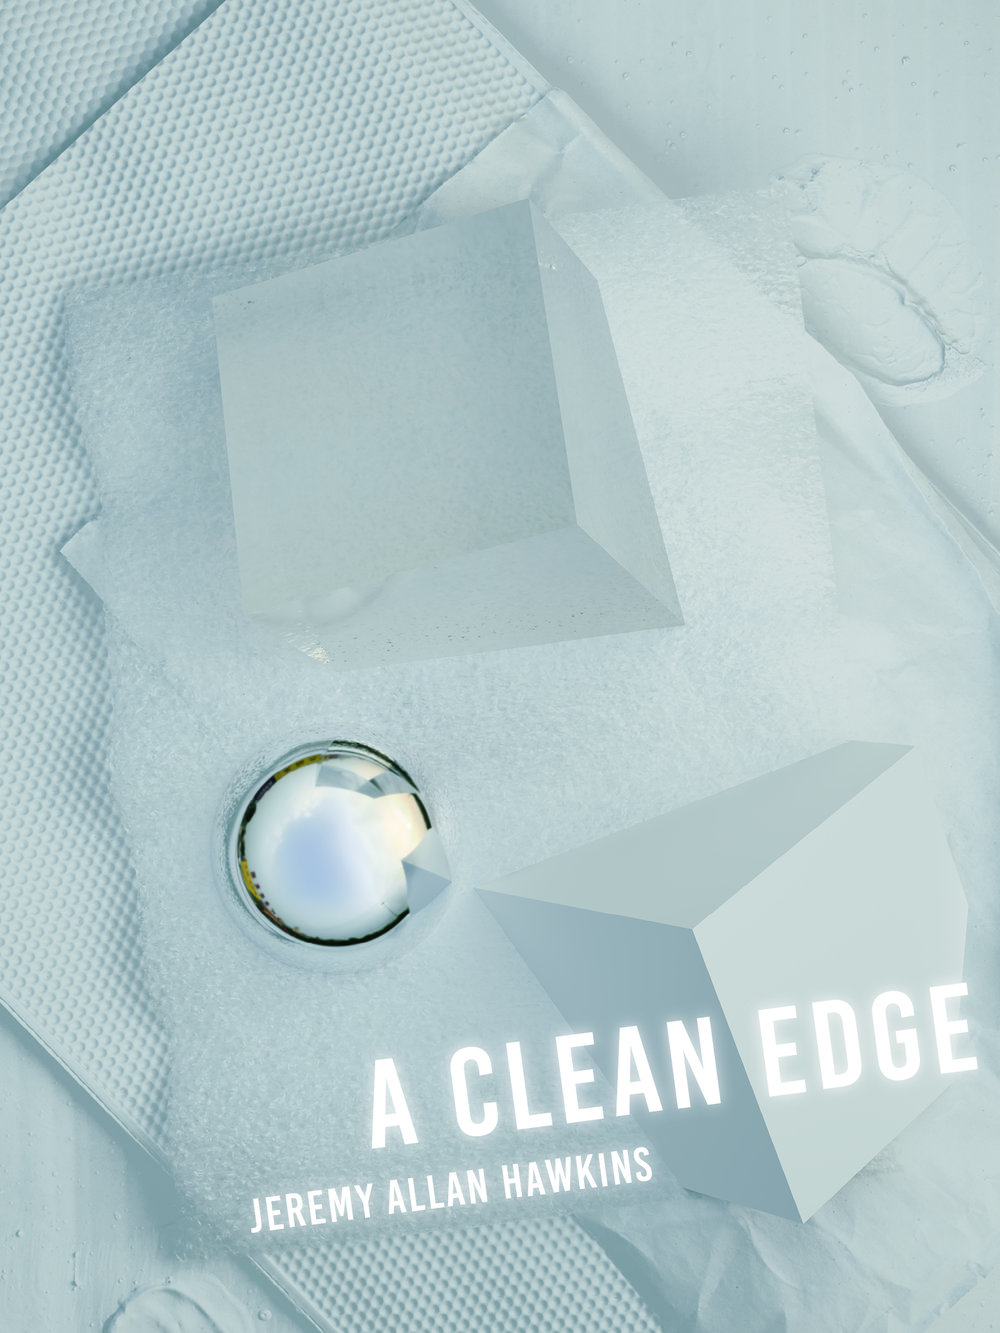 Cover layout + interior design for Jeremy Allan Hawkin's  A Clean Edge , winner of the 2016 BOAAT Press Chapbook Contest, selected by Richard Siken ( BOAAT Press , 2017).